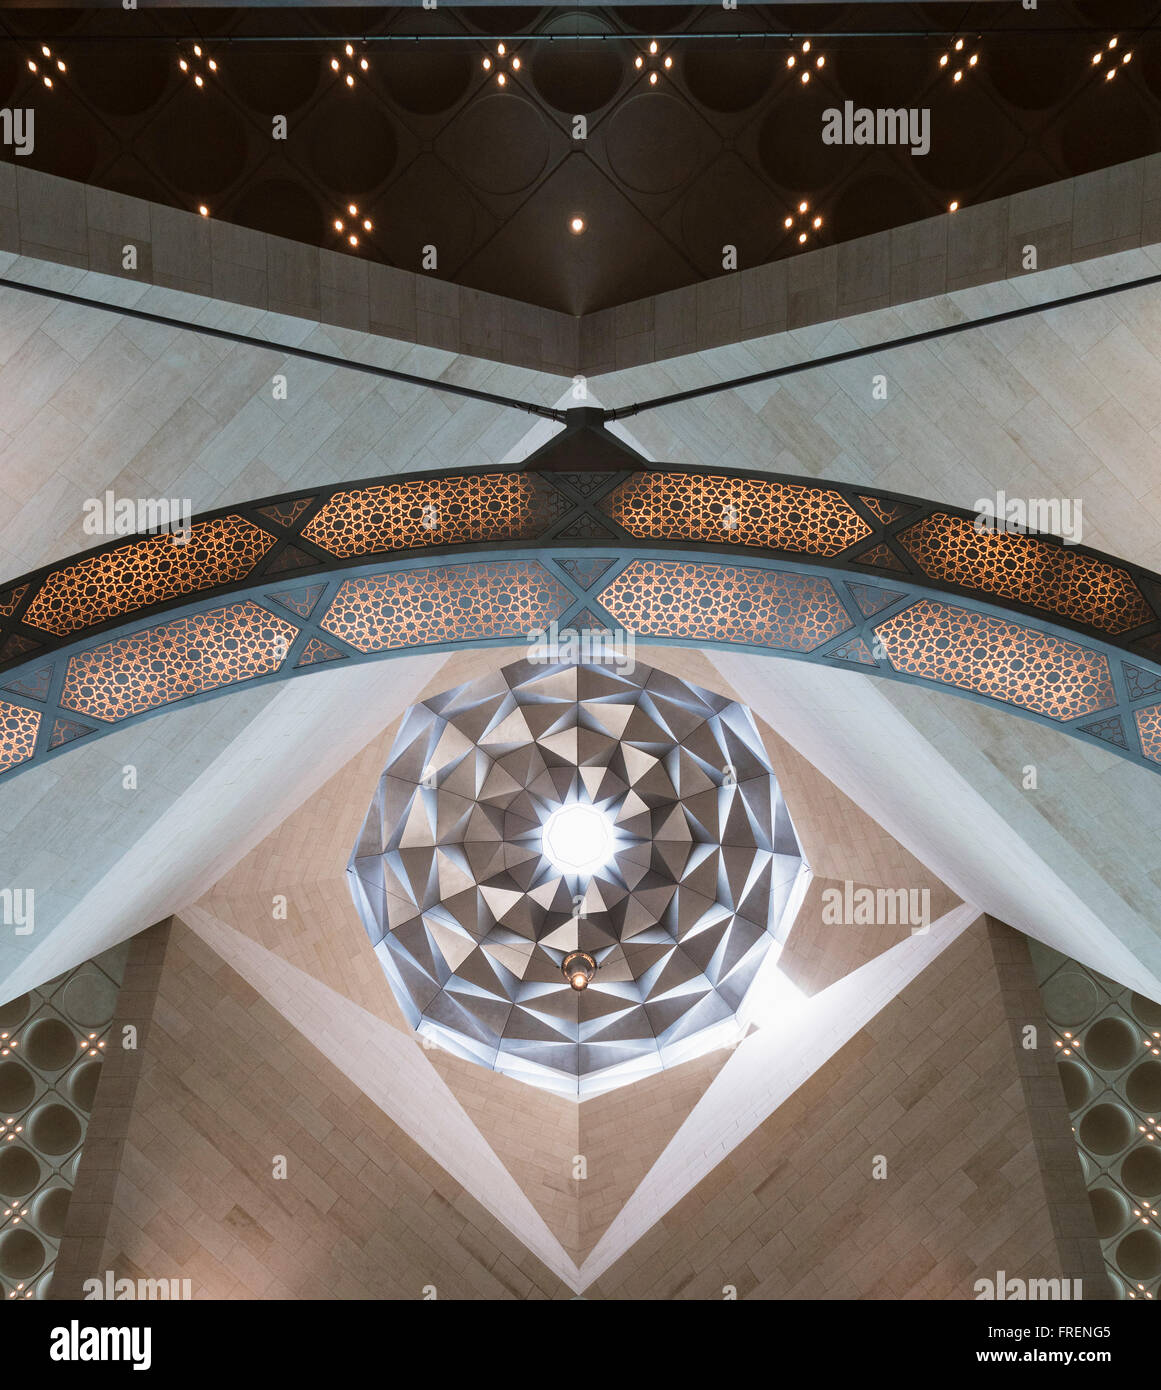 Interior view of architectural details of roof at Museum of Islamic Art in Doha Qatar - Stock Image